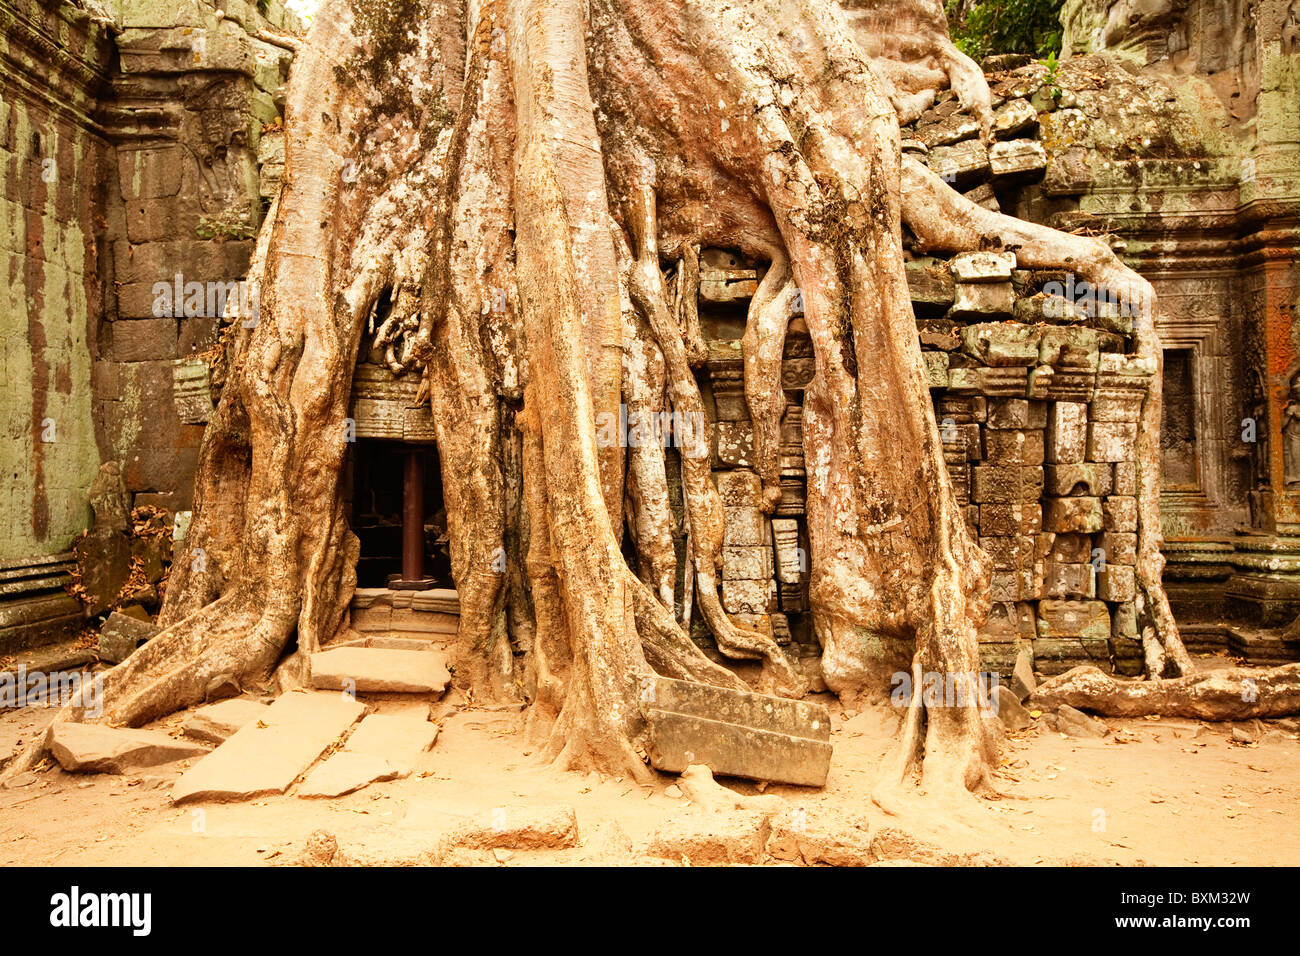 The Tetrameles nudiflora tree engulfs Ta Prohm Temple in the Angkor Temple Complex - Stock Image